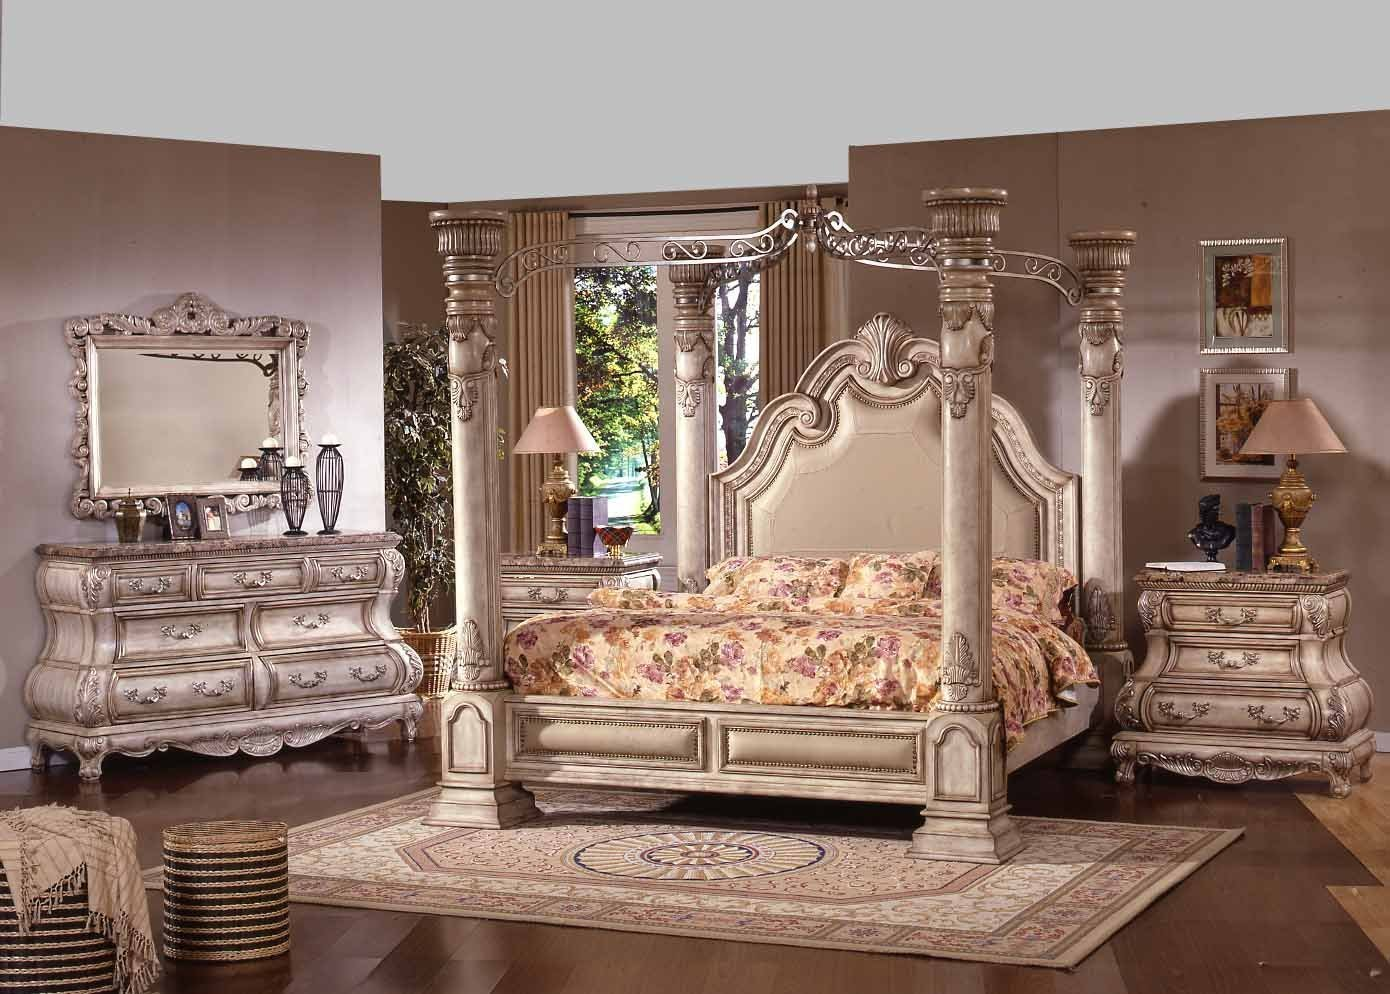 Collection queen bedroom furniture sets the new opera traditional four post white wash wood king and queen bedroom kzqhved